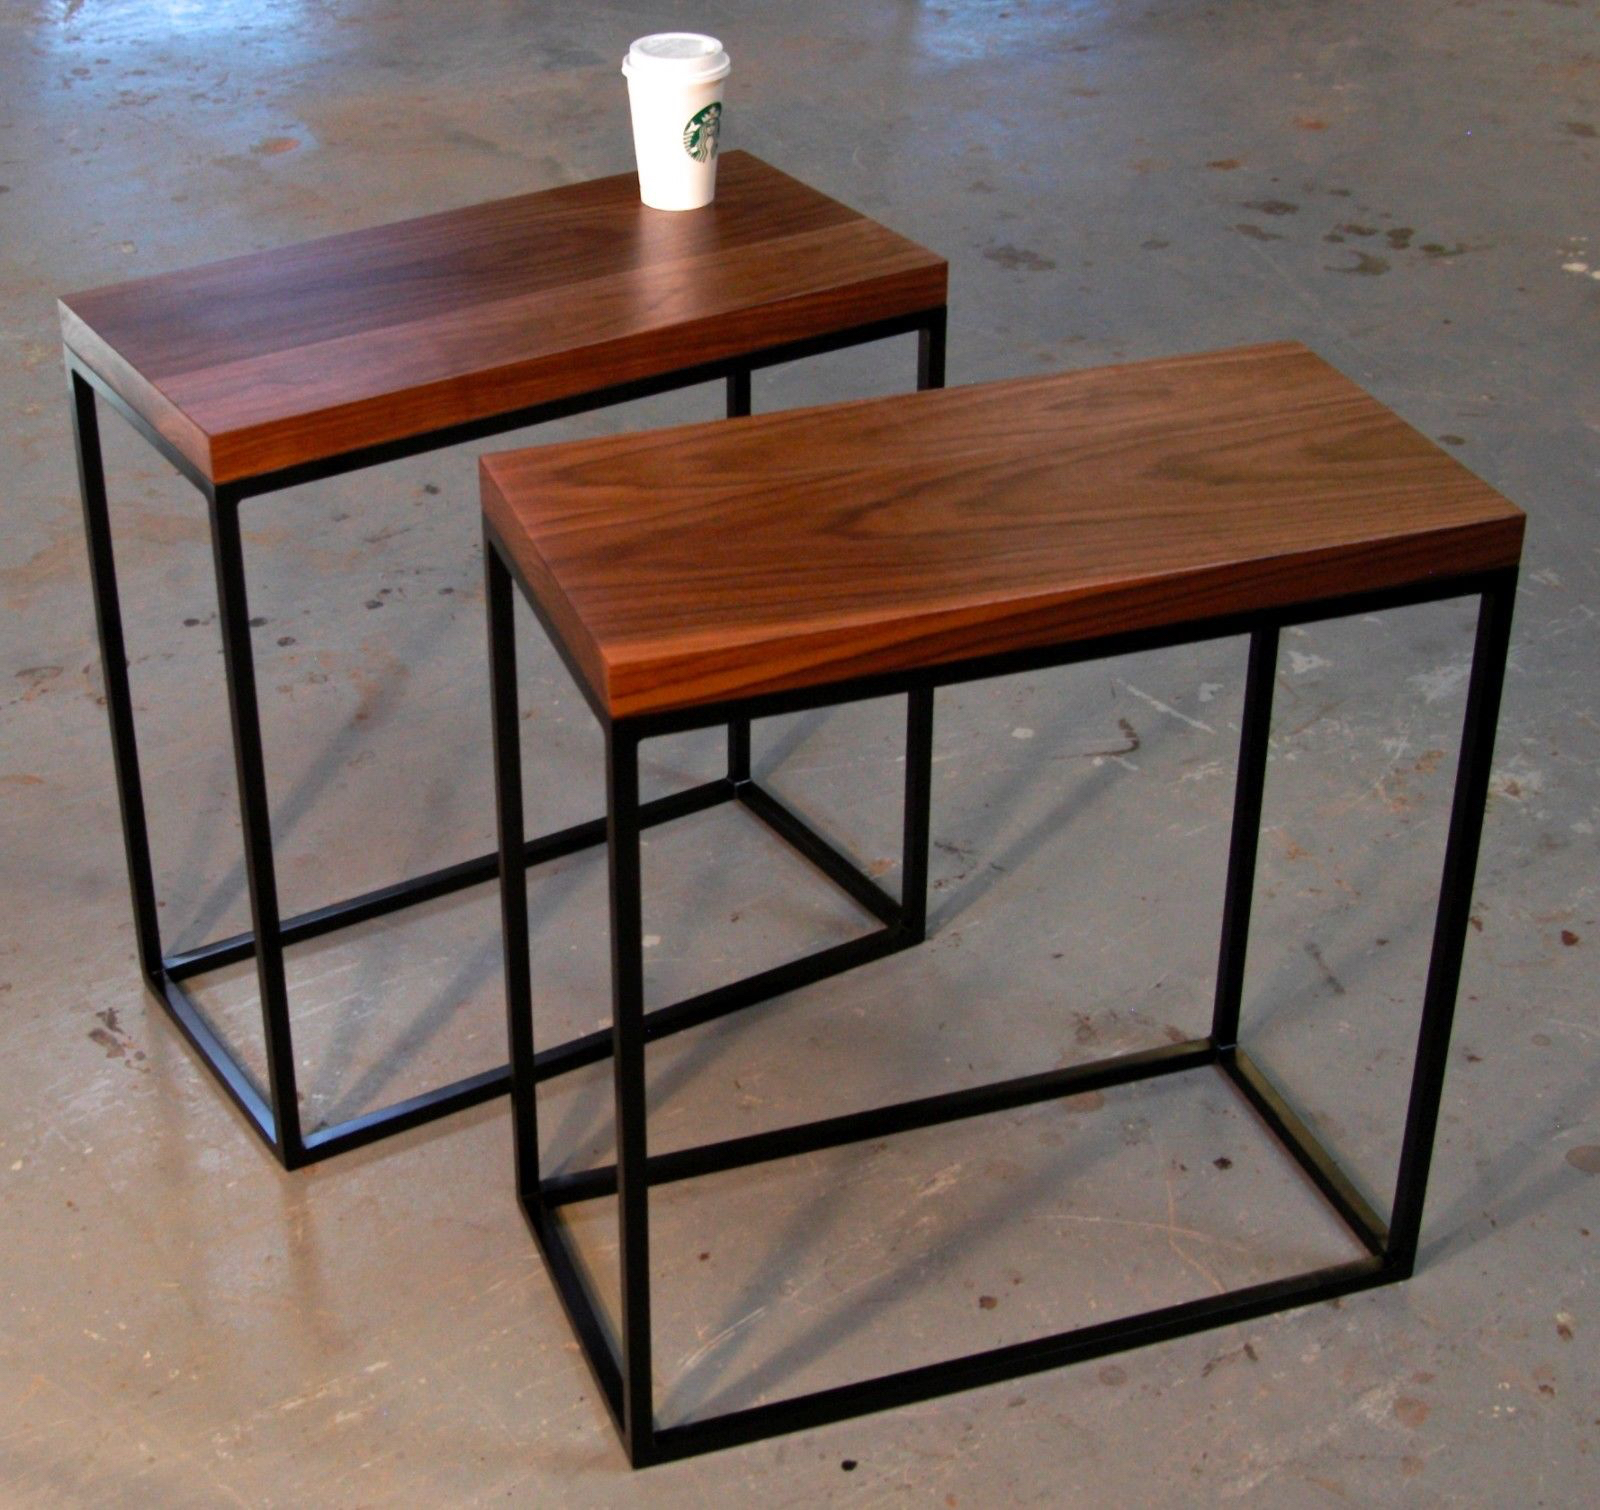 Skinny Side Table Appears To Save The Space Without